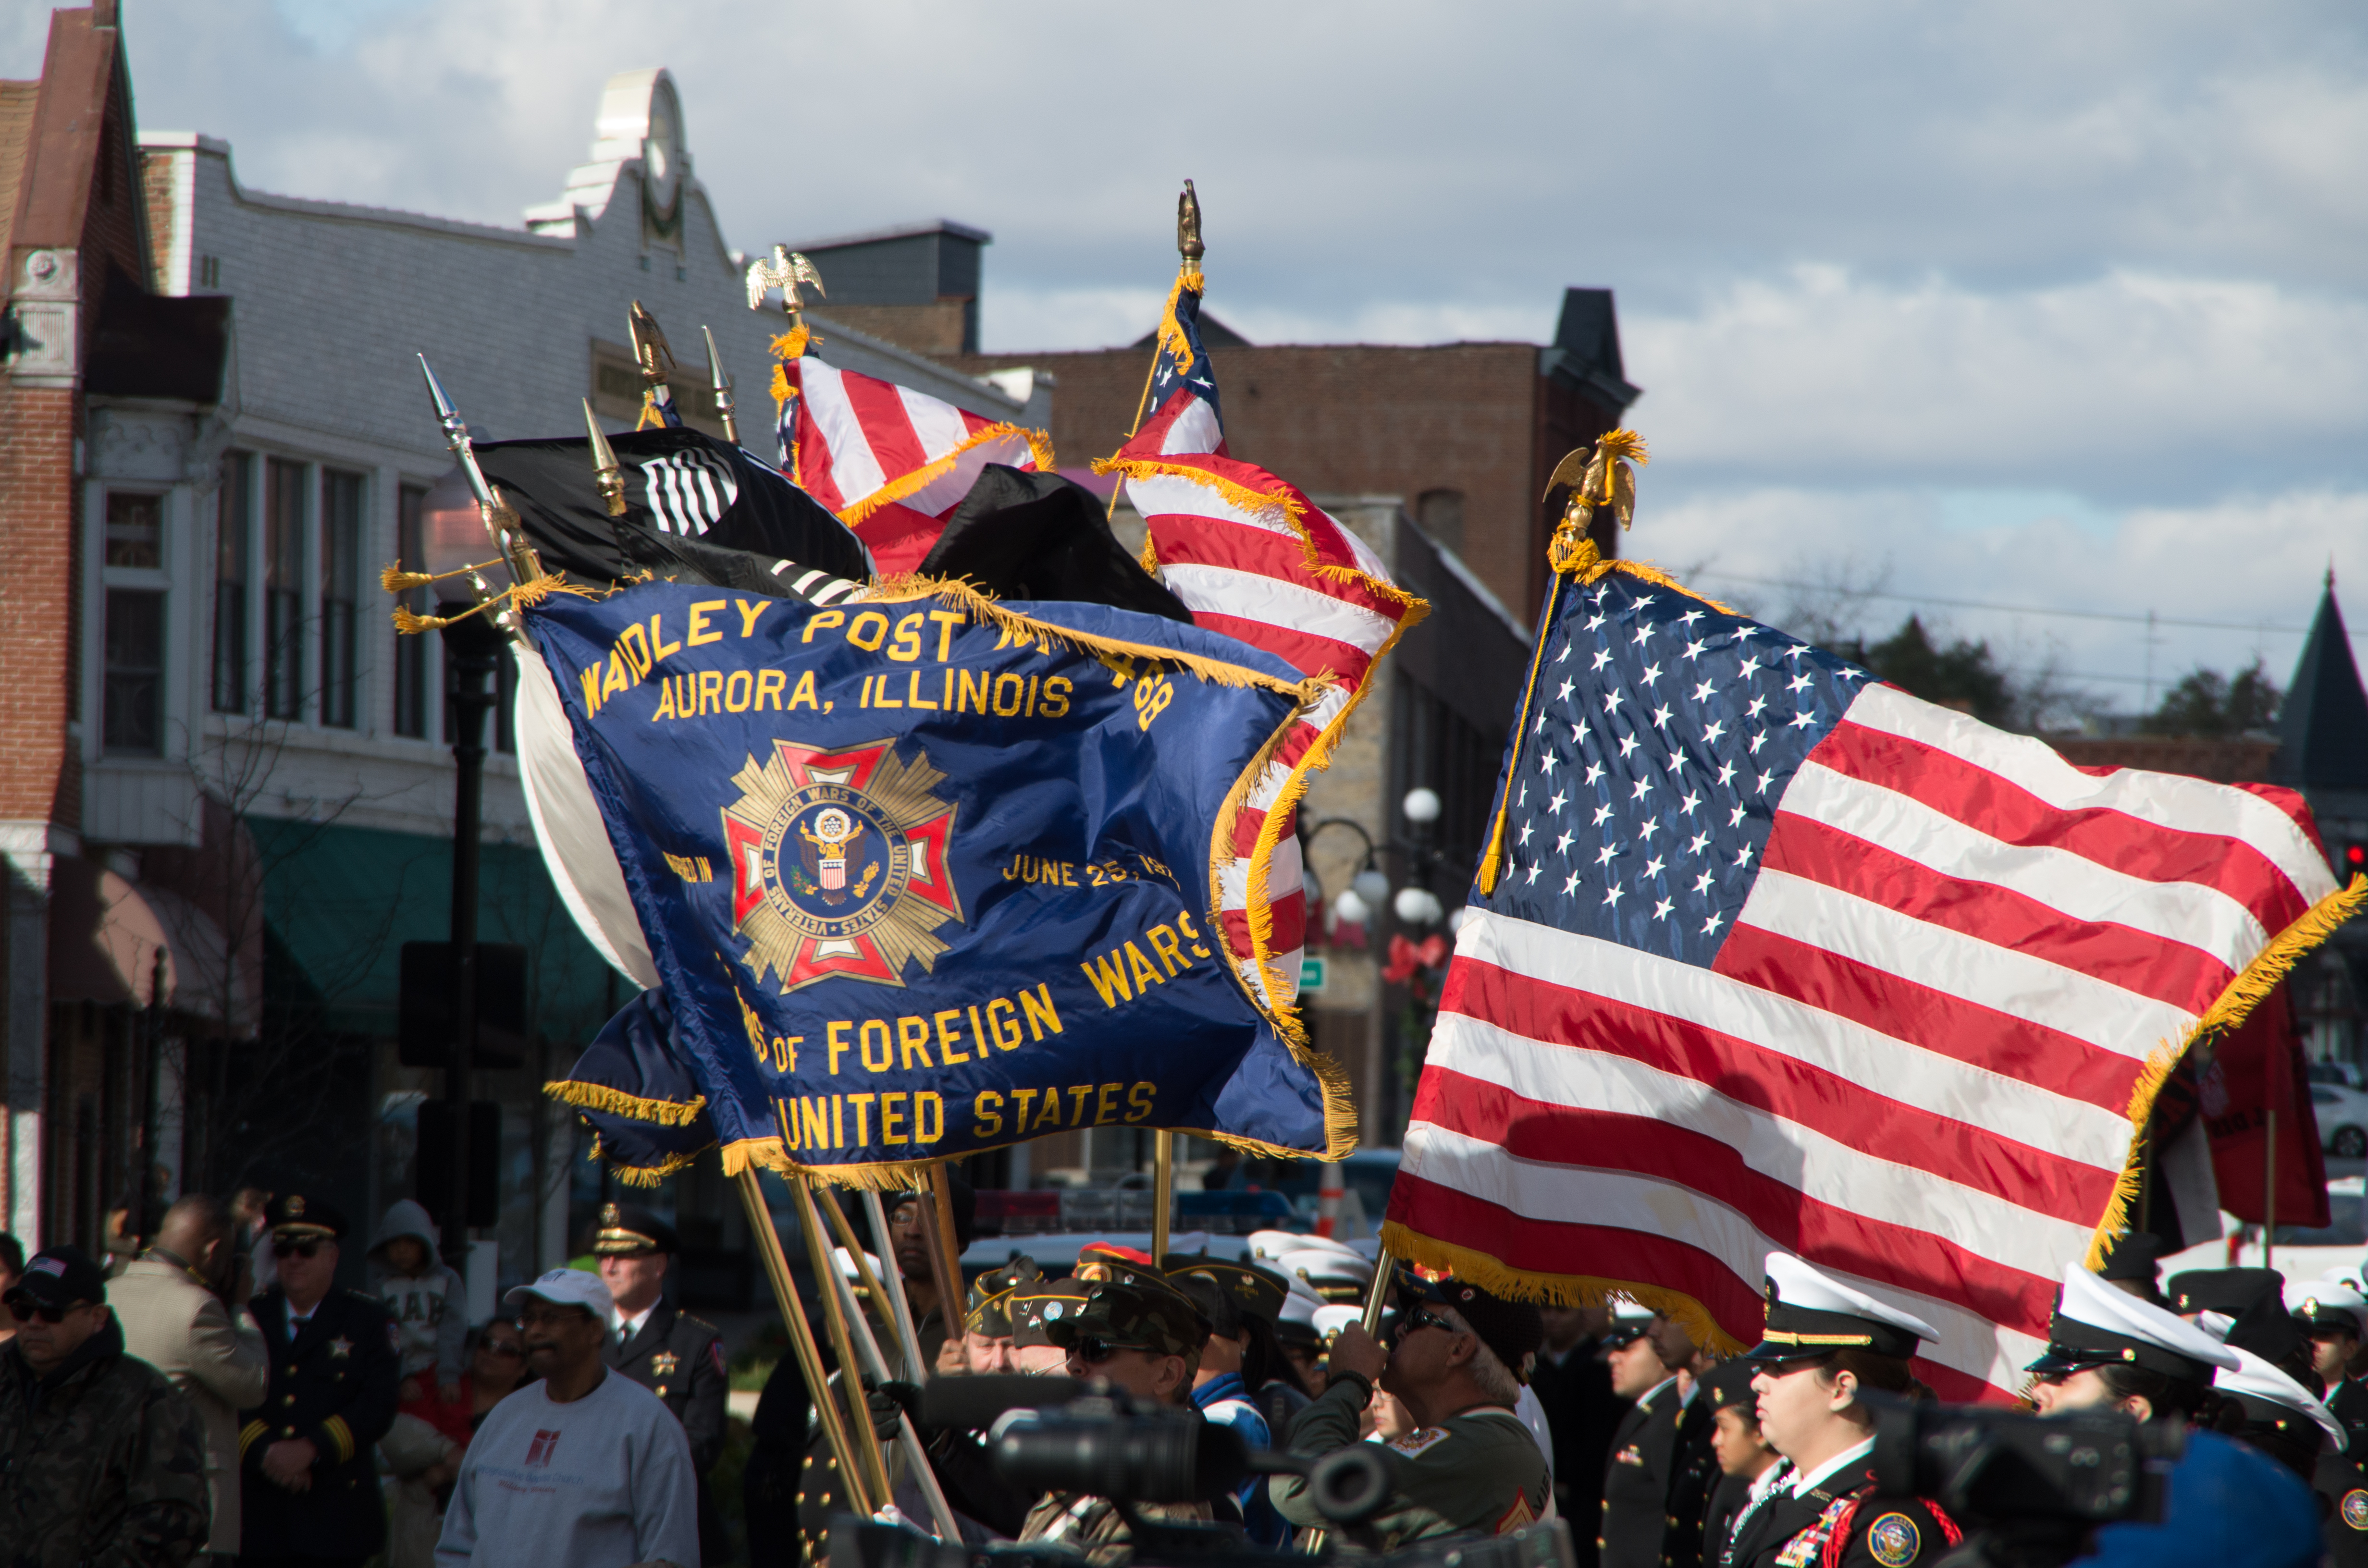 Veterans Day parade in Aurora, Illinois, unknown year. Photo from EnjoyAurora.com.